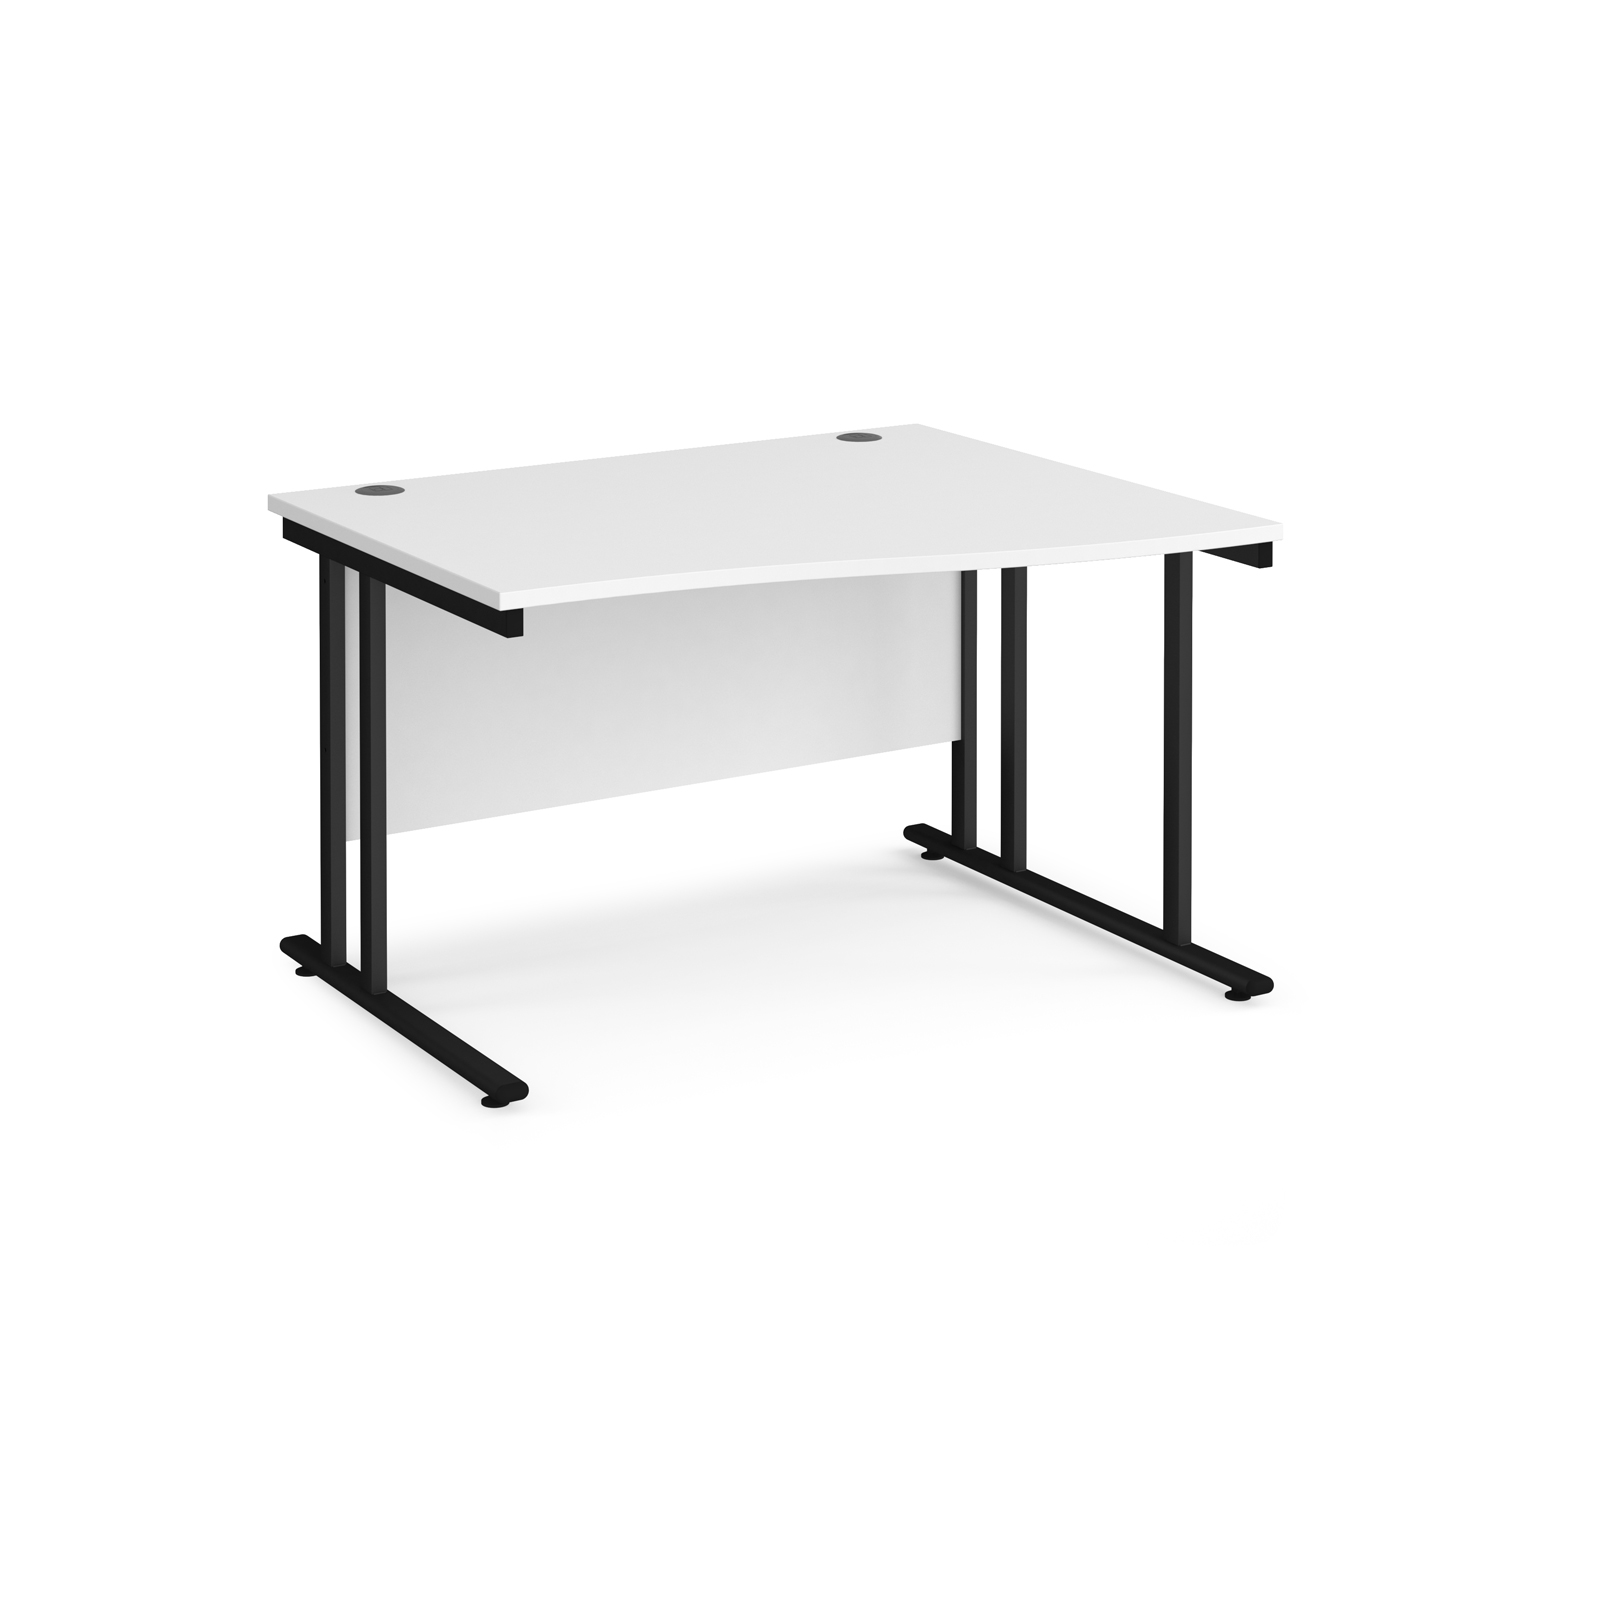 Right Handed Maestro 25 right hand wave desk 1200mm wide - black cantilever leg frame, white top